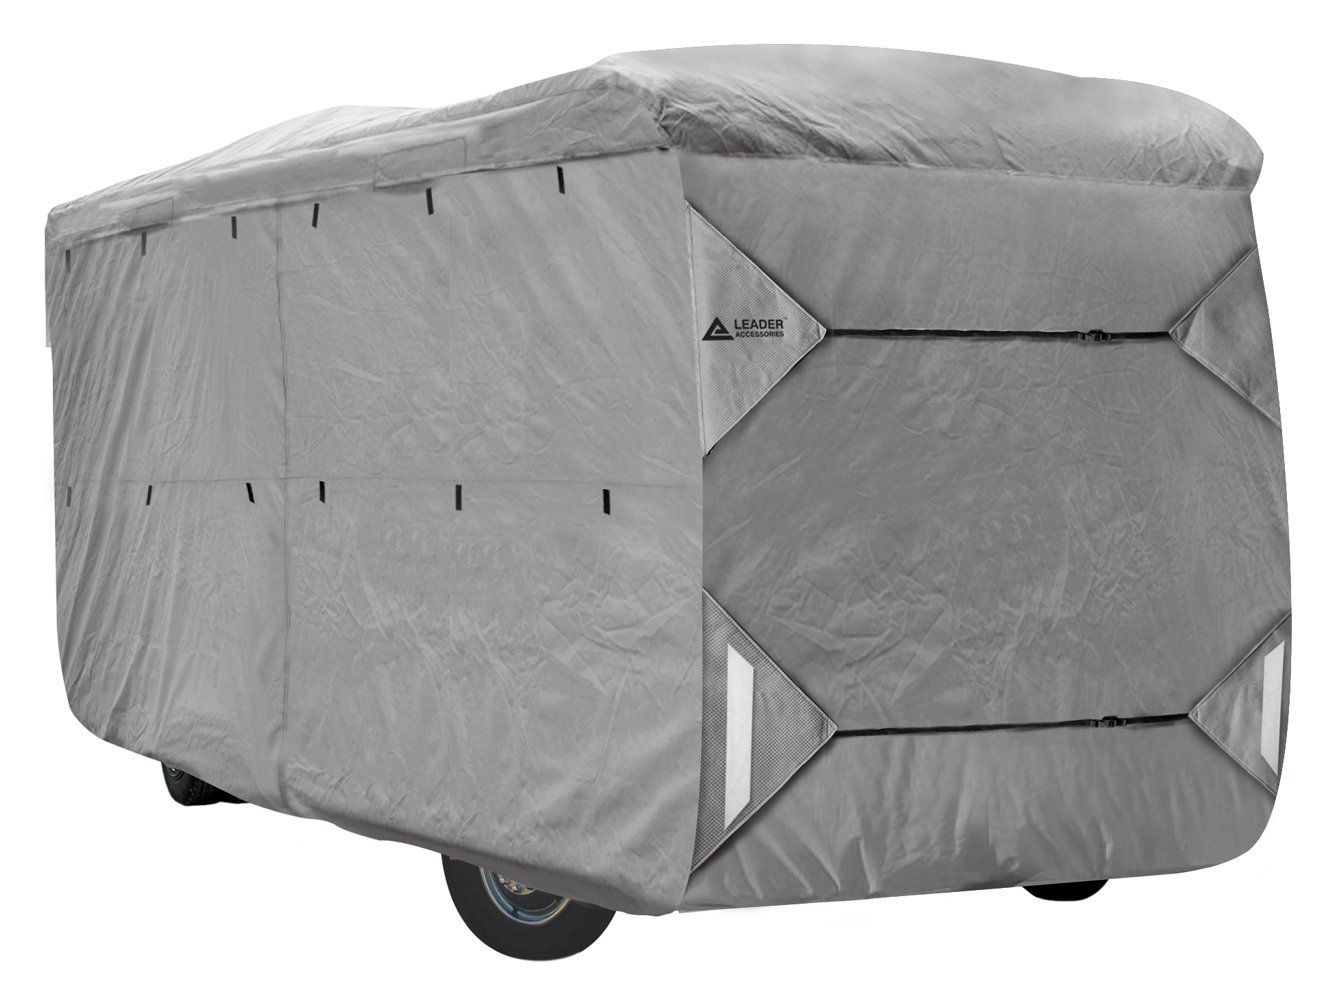 Leader Accessories Class A RV Cover Fits 33-37 Motorhome Polypropylene 453 106 120